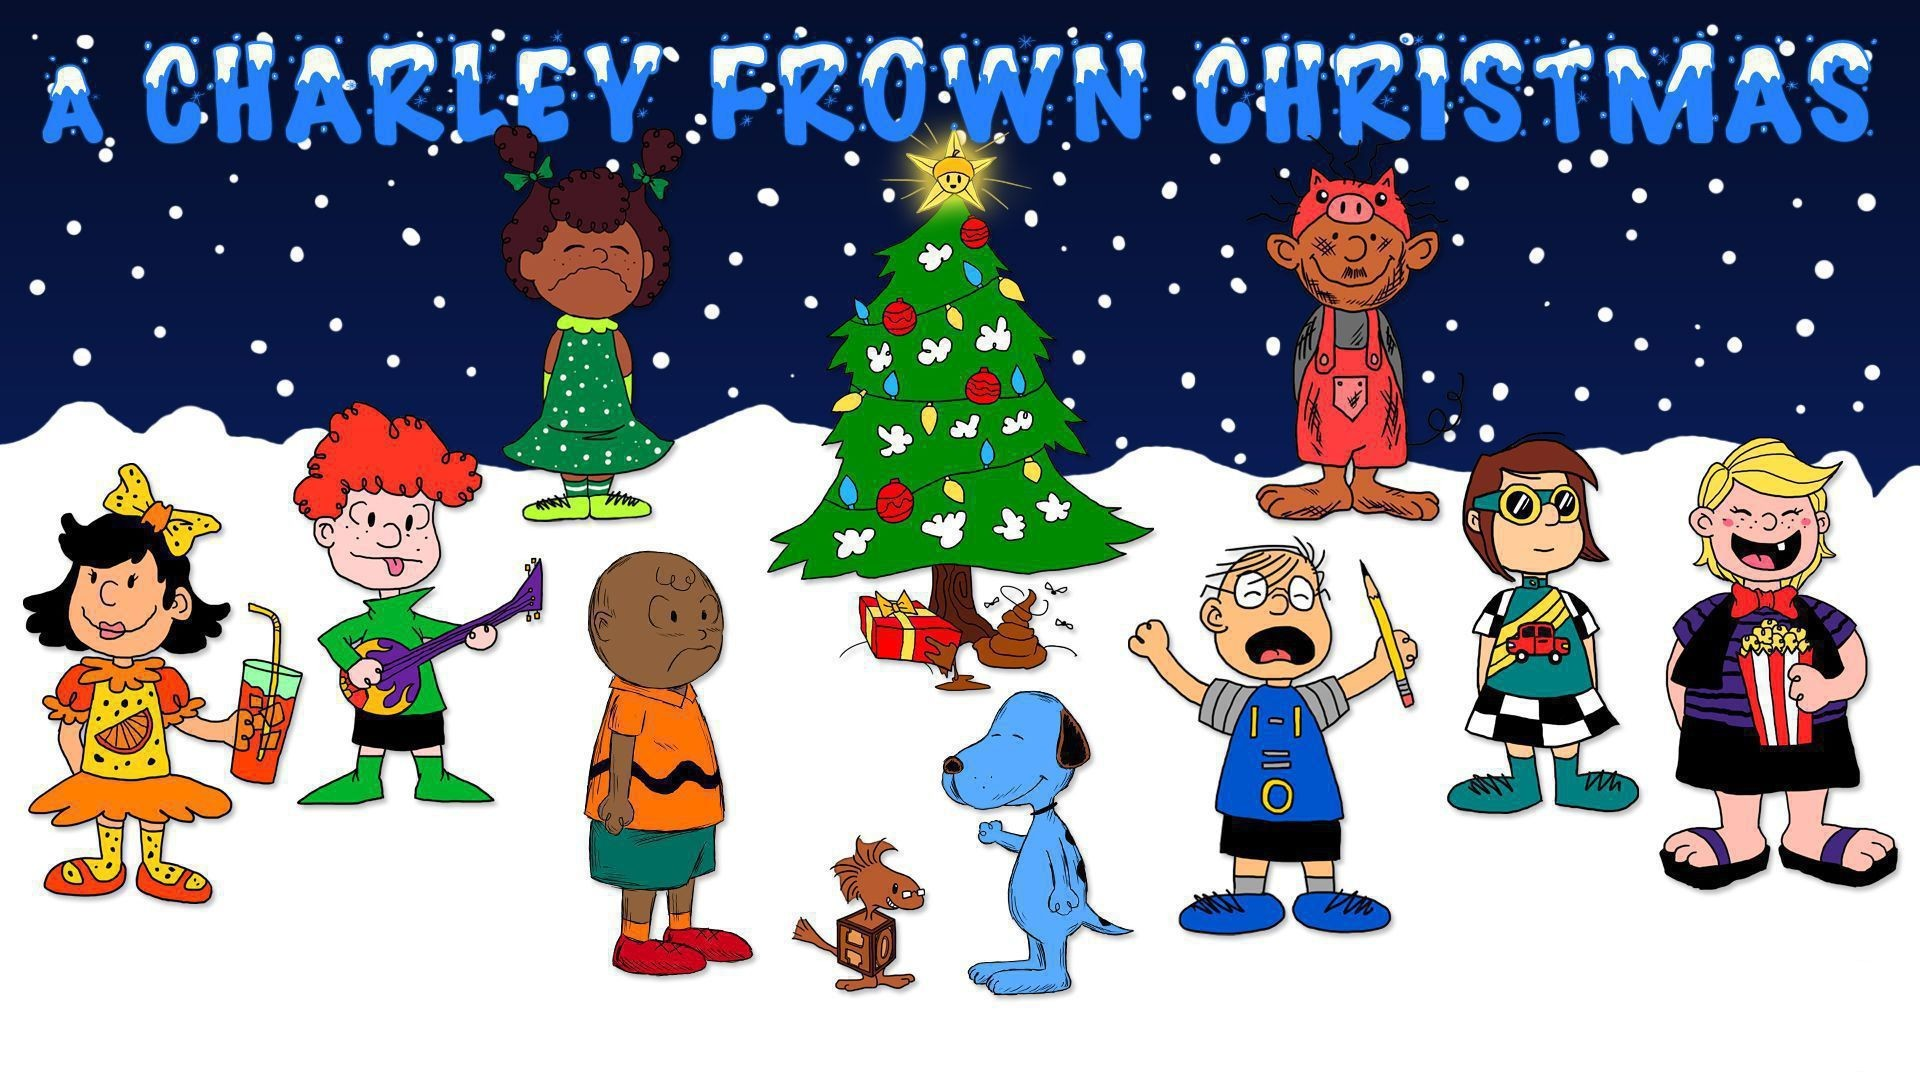 Snoopy Christmas Wallpaper (50+ pictures)